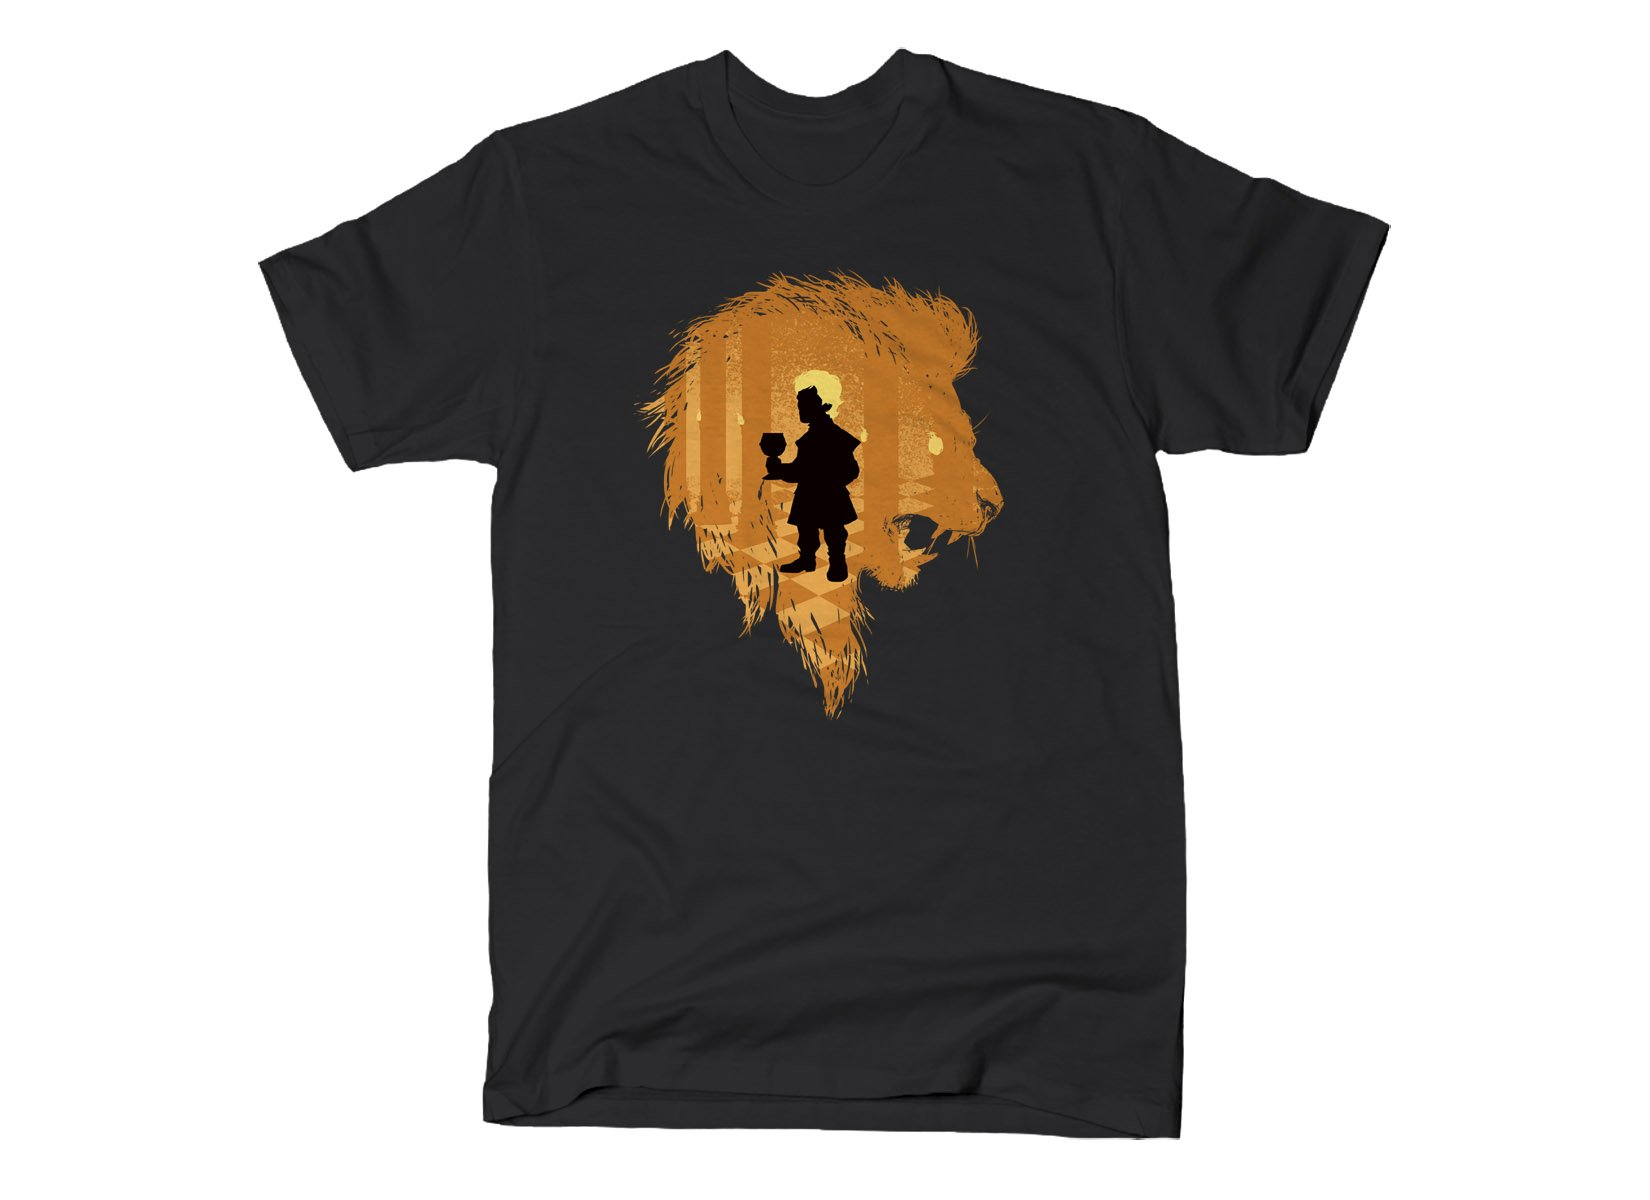 The Lion on Mens T-Shirt